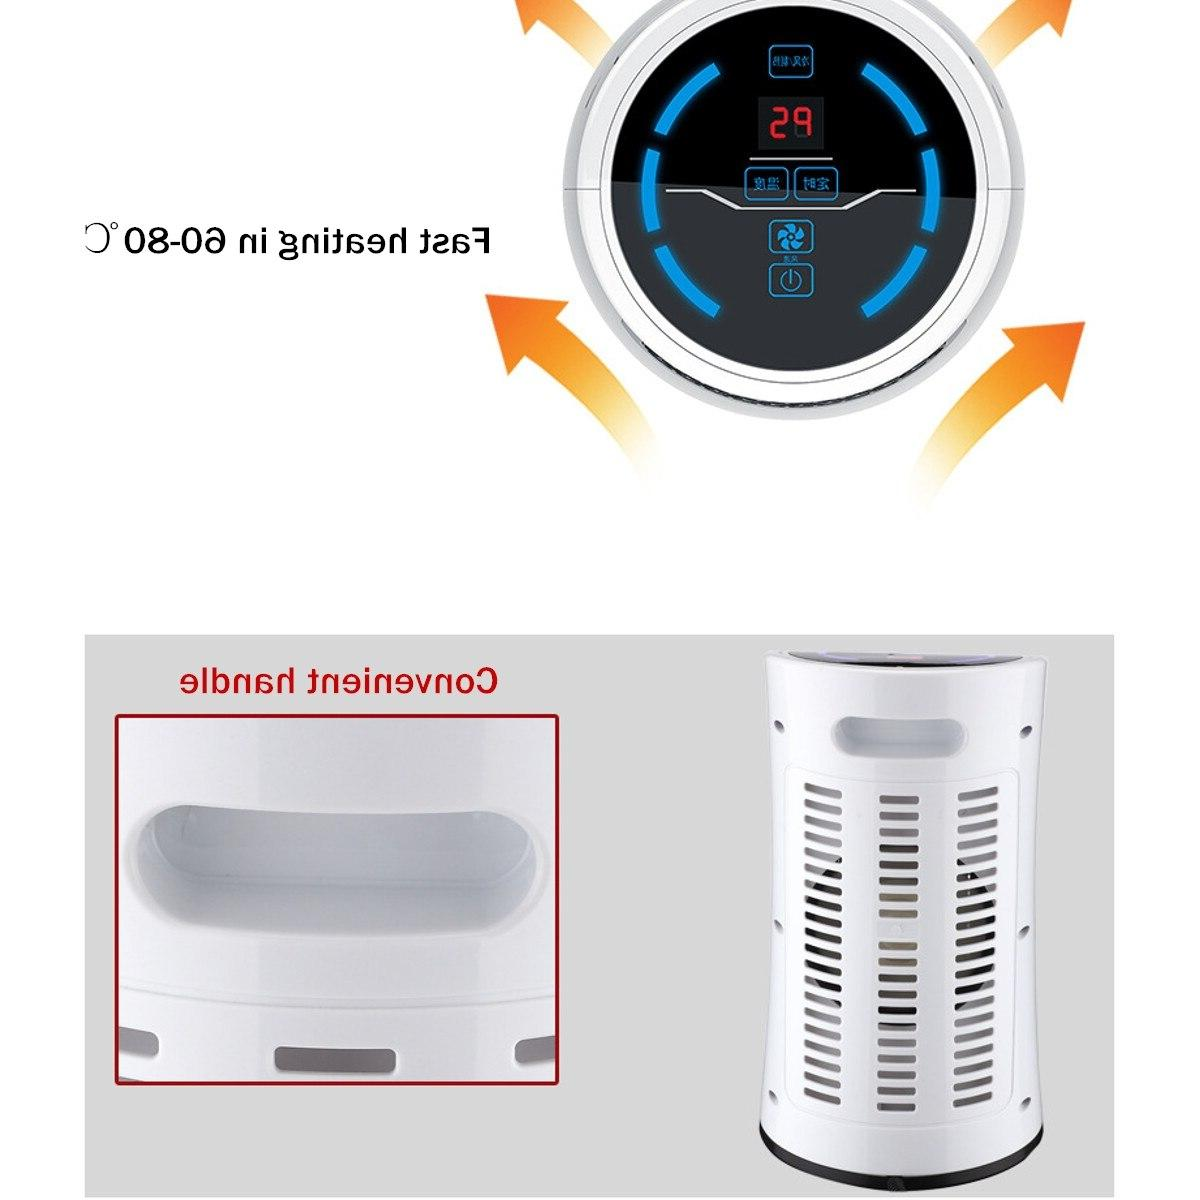 1500W <font><b>Conditioner</b></font> Conditioning Electric Timing <font><b>Heater</b></font> <font><b>Heater</b></font>